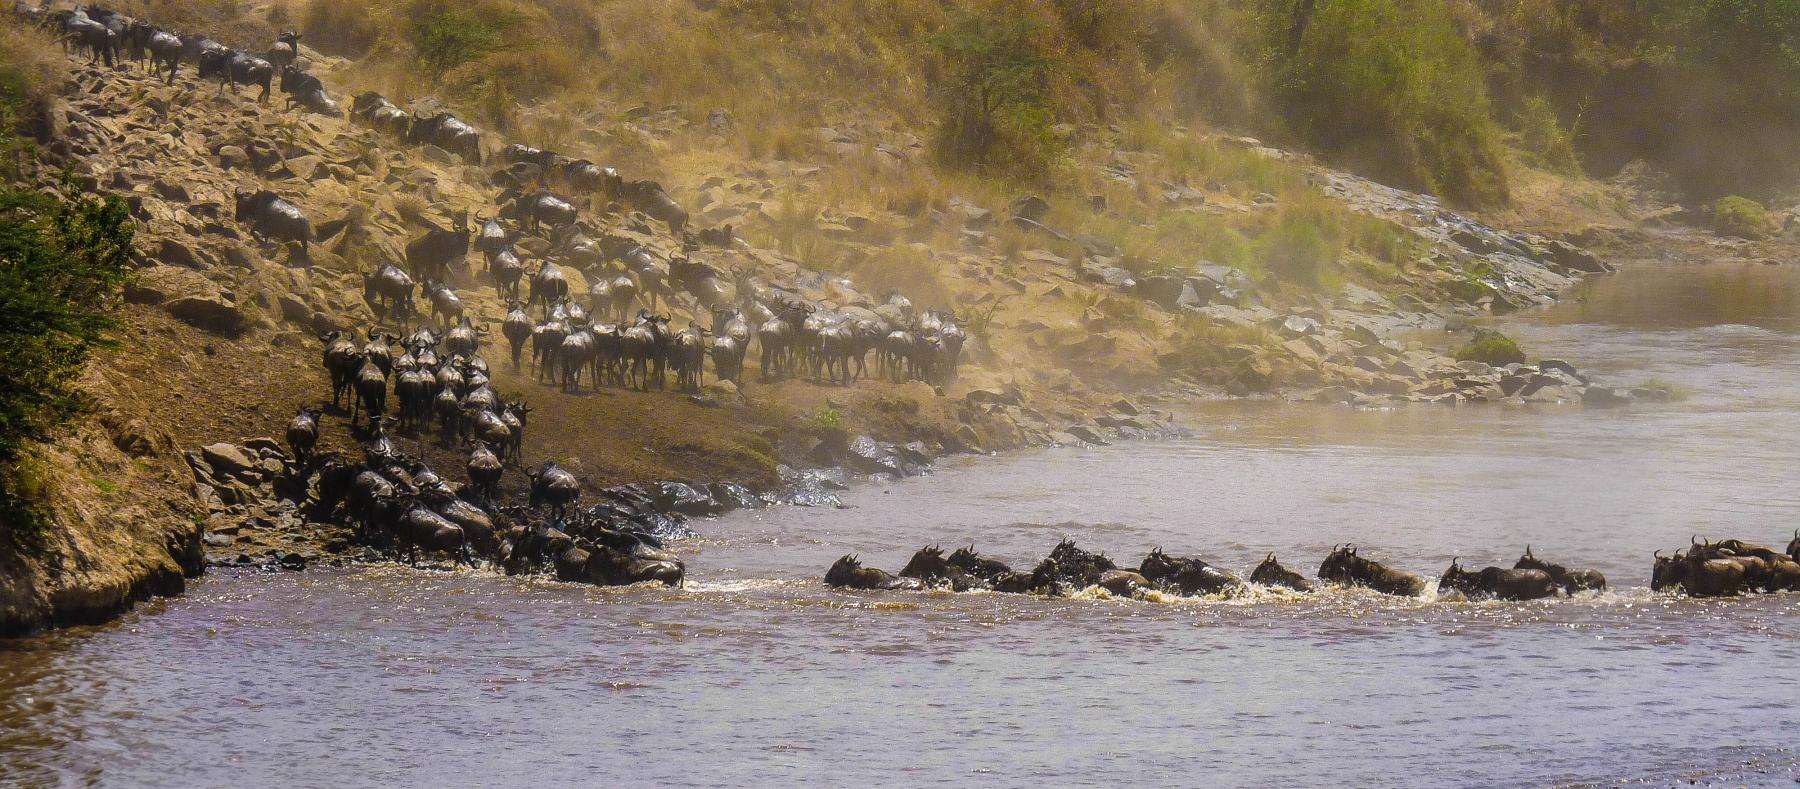 Let's experience the greatest wildlife show and migration - Masai Mara  starting at Nairobi, Nairobi County, Kenya